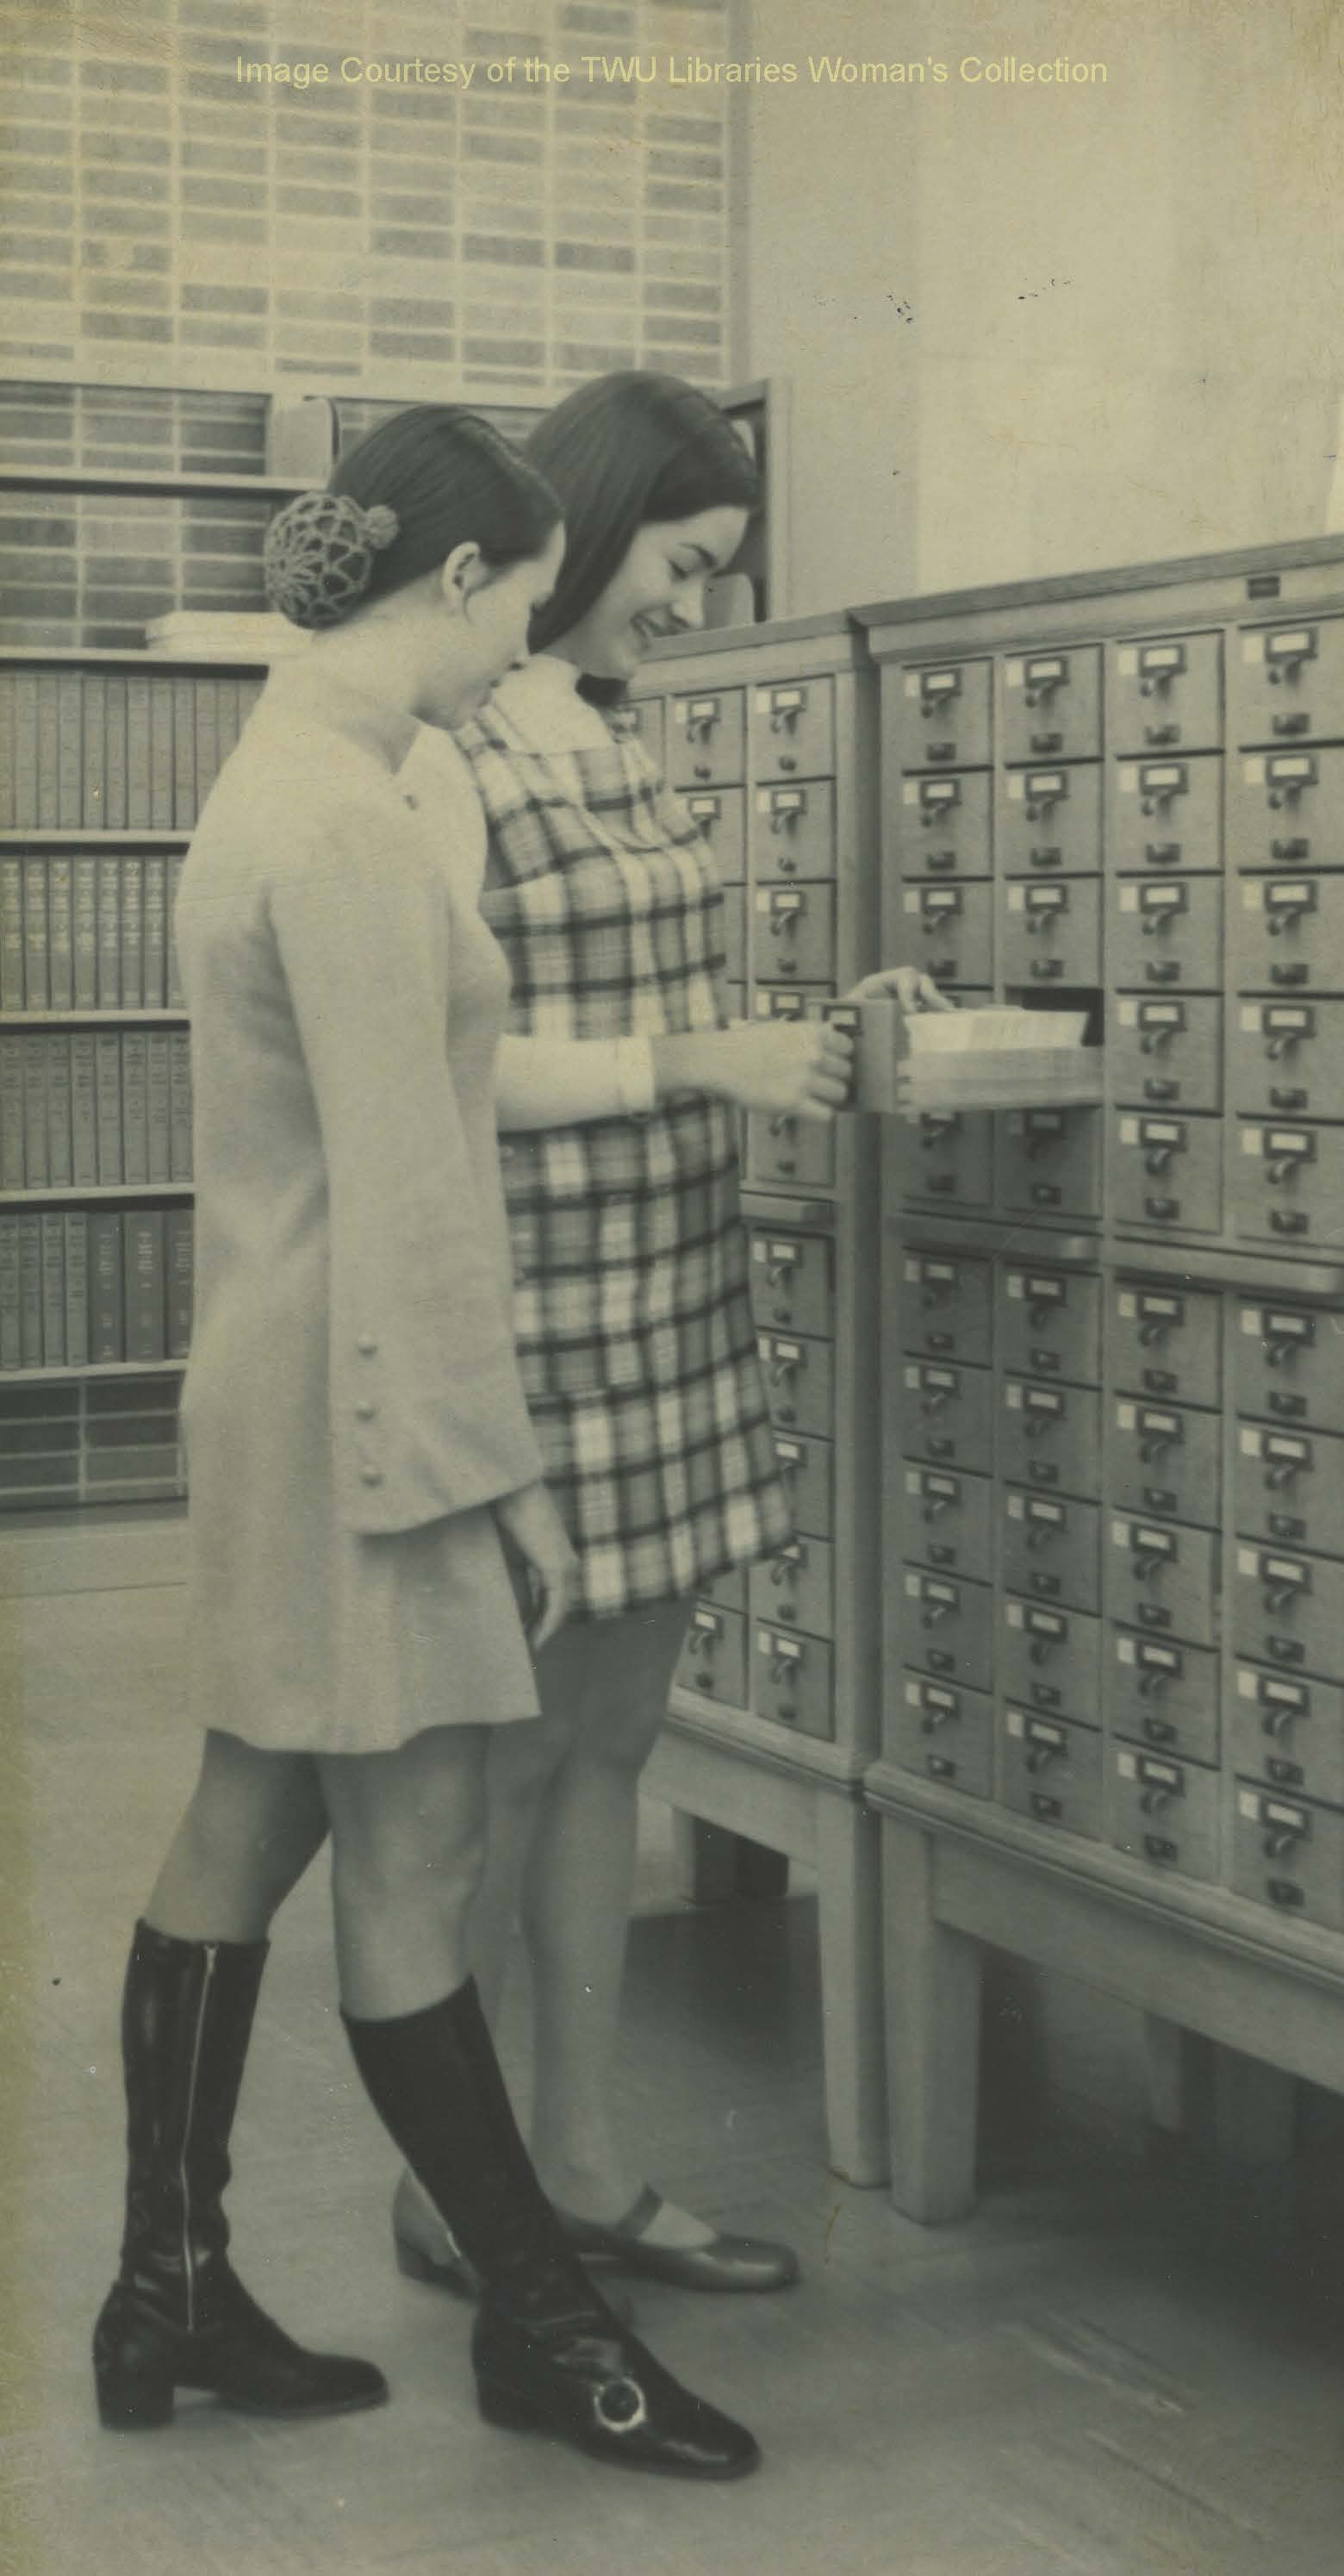 Students browse the card catalog at Bralley Memorial Library. TWU students spent hours sifting through hundreds of cards contained in special file cabinets like the one seen here. (Photo:1960s, Courtesy TWU Woman's Collection)